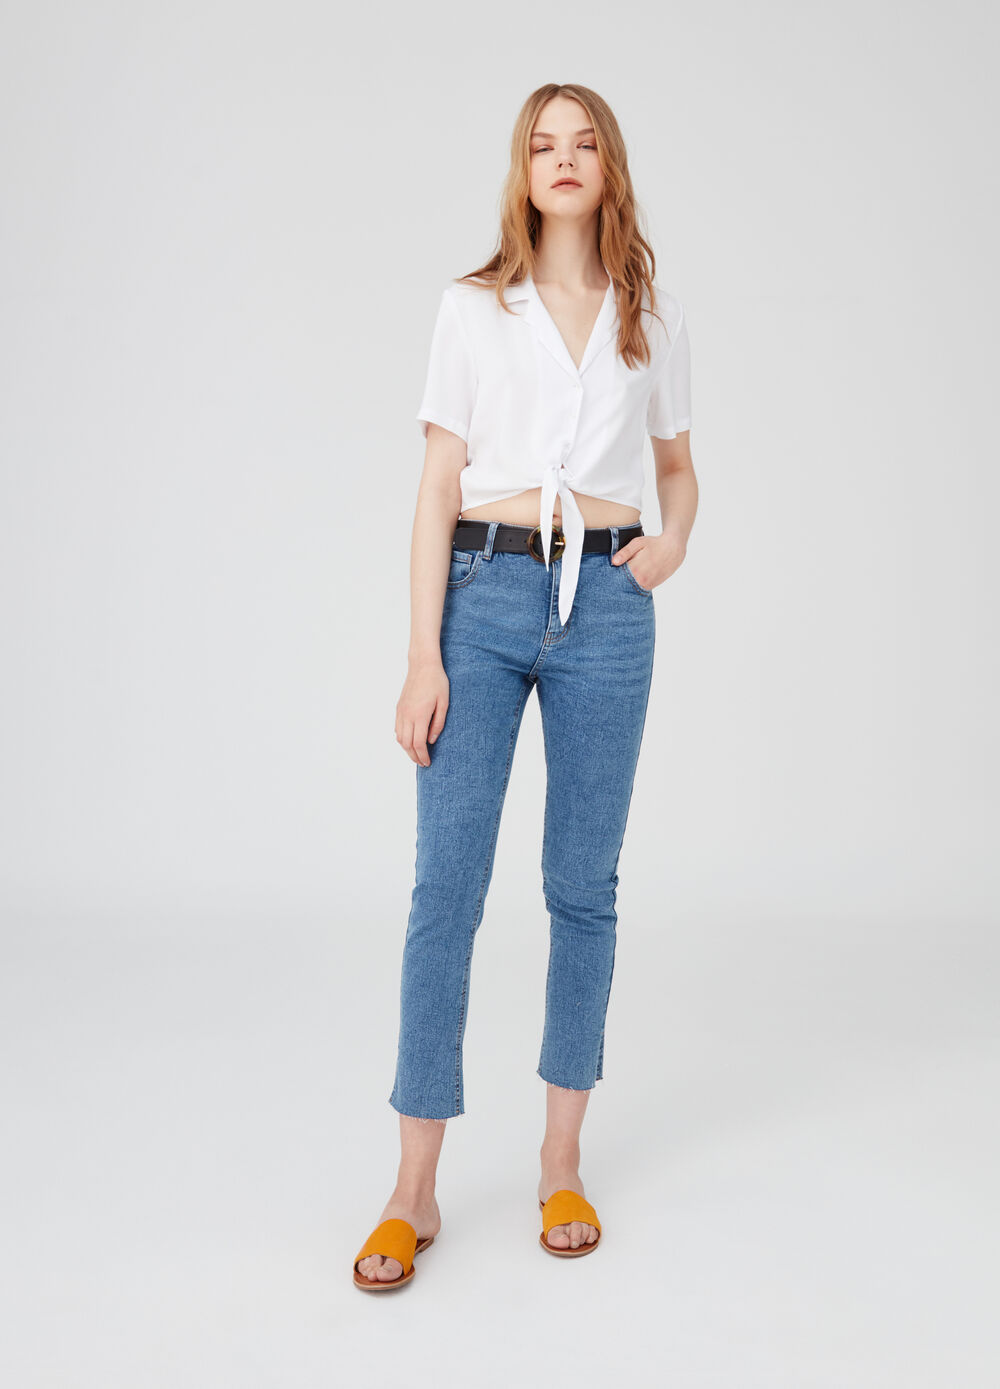 Cropped shirt with short sleeves and knot